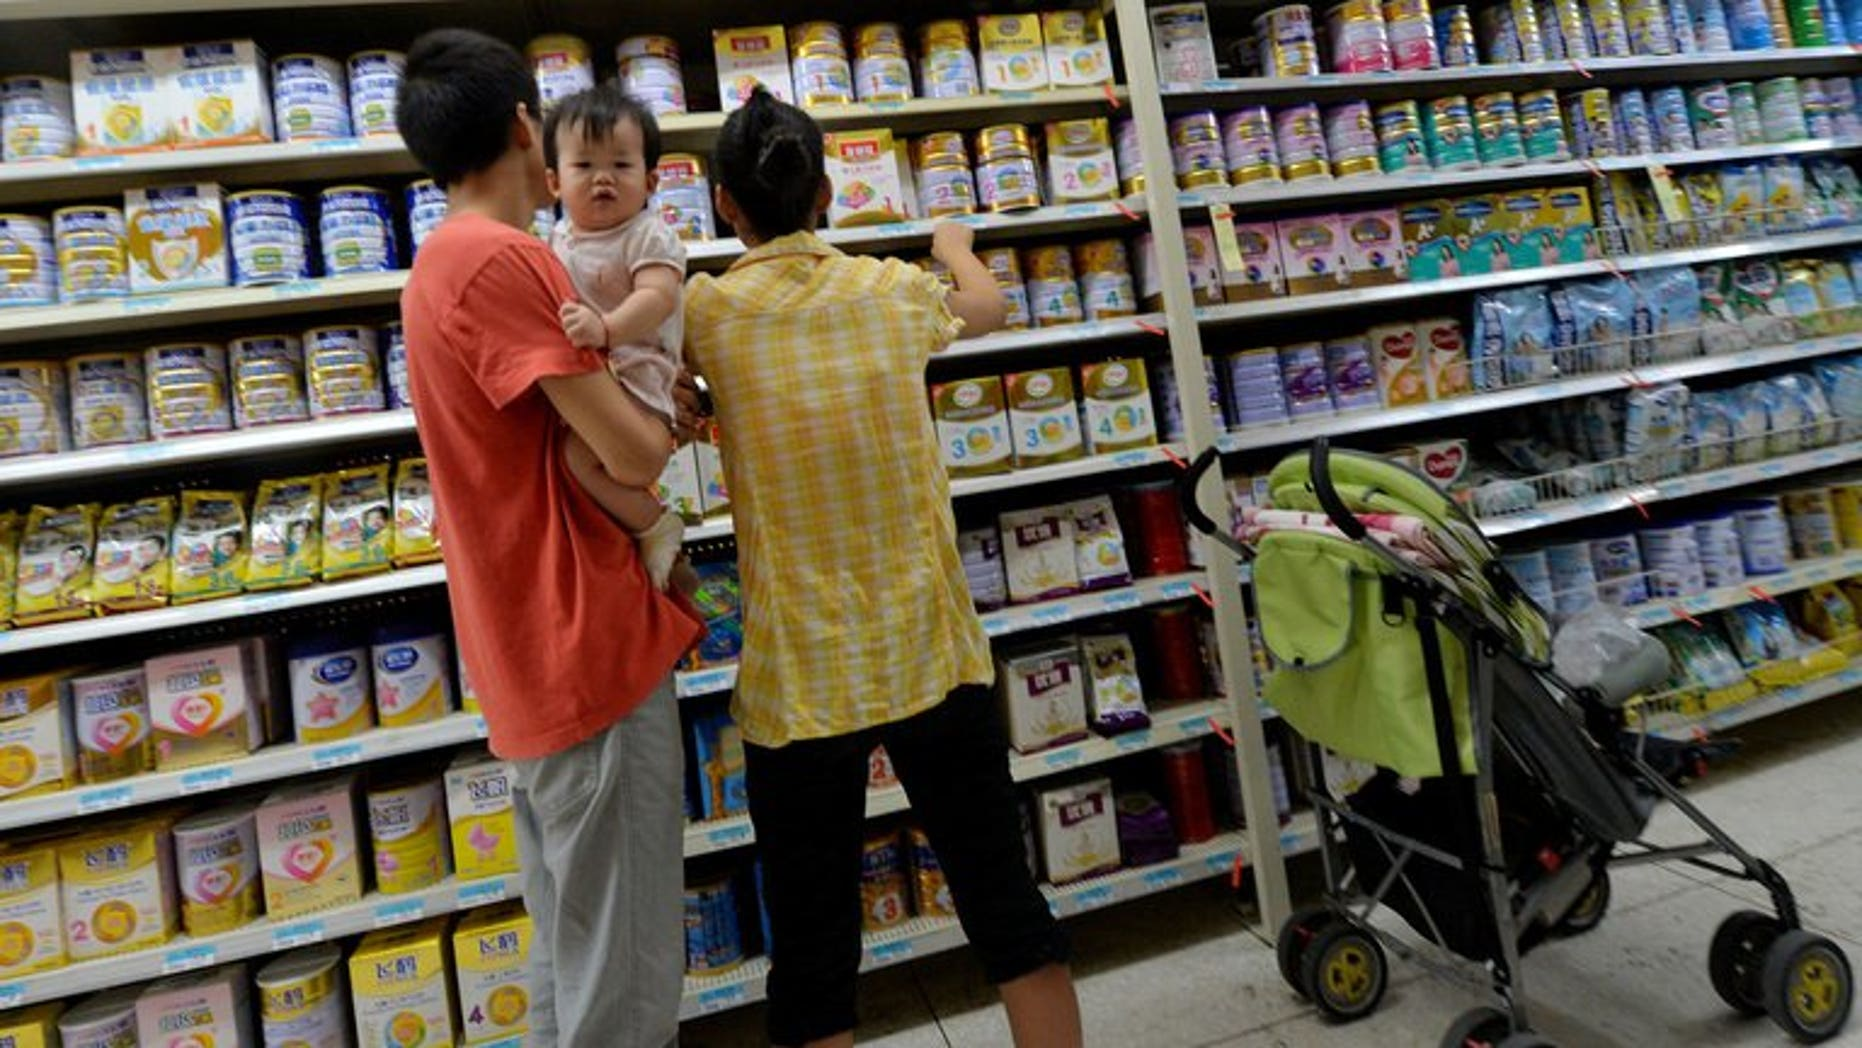 A Chinese family buys baby milk powder at a store in Beijing on August 7, 2013. The latest scare comes after an ingredient used in some baby formula contained a potentially deadly bug.